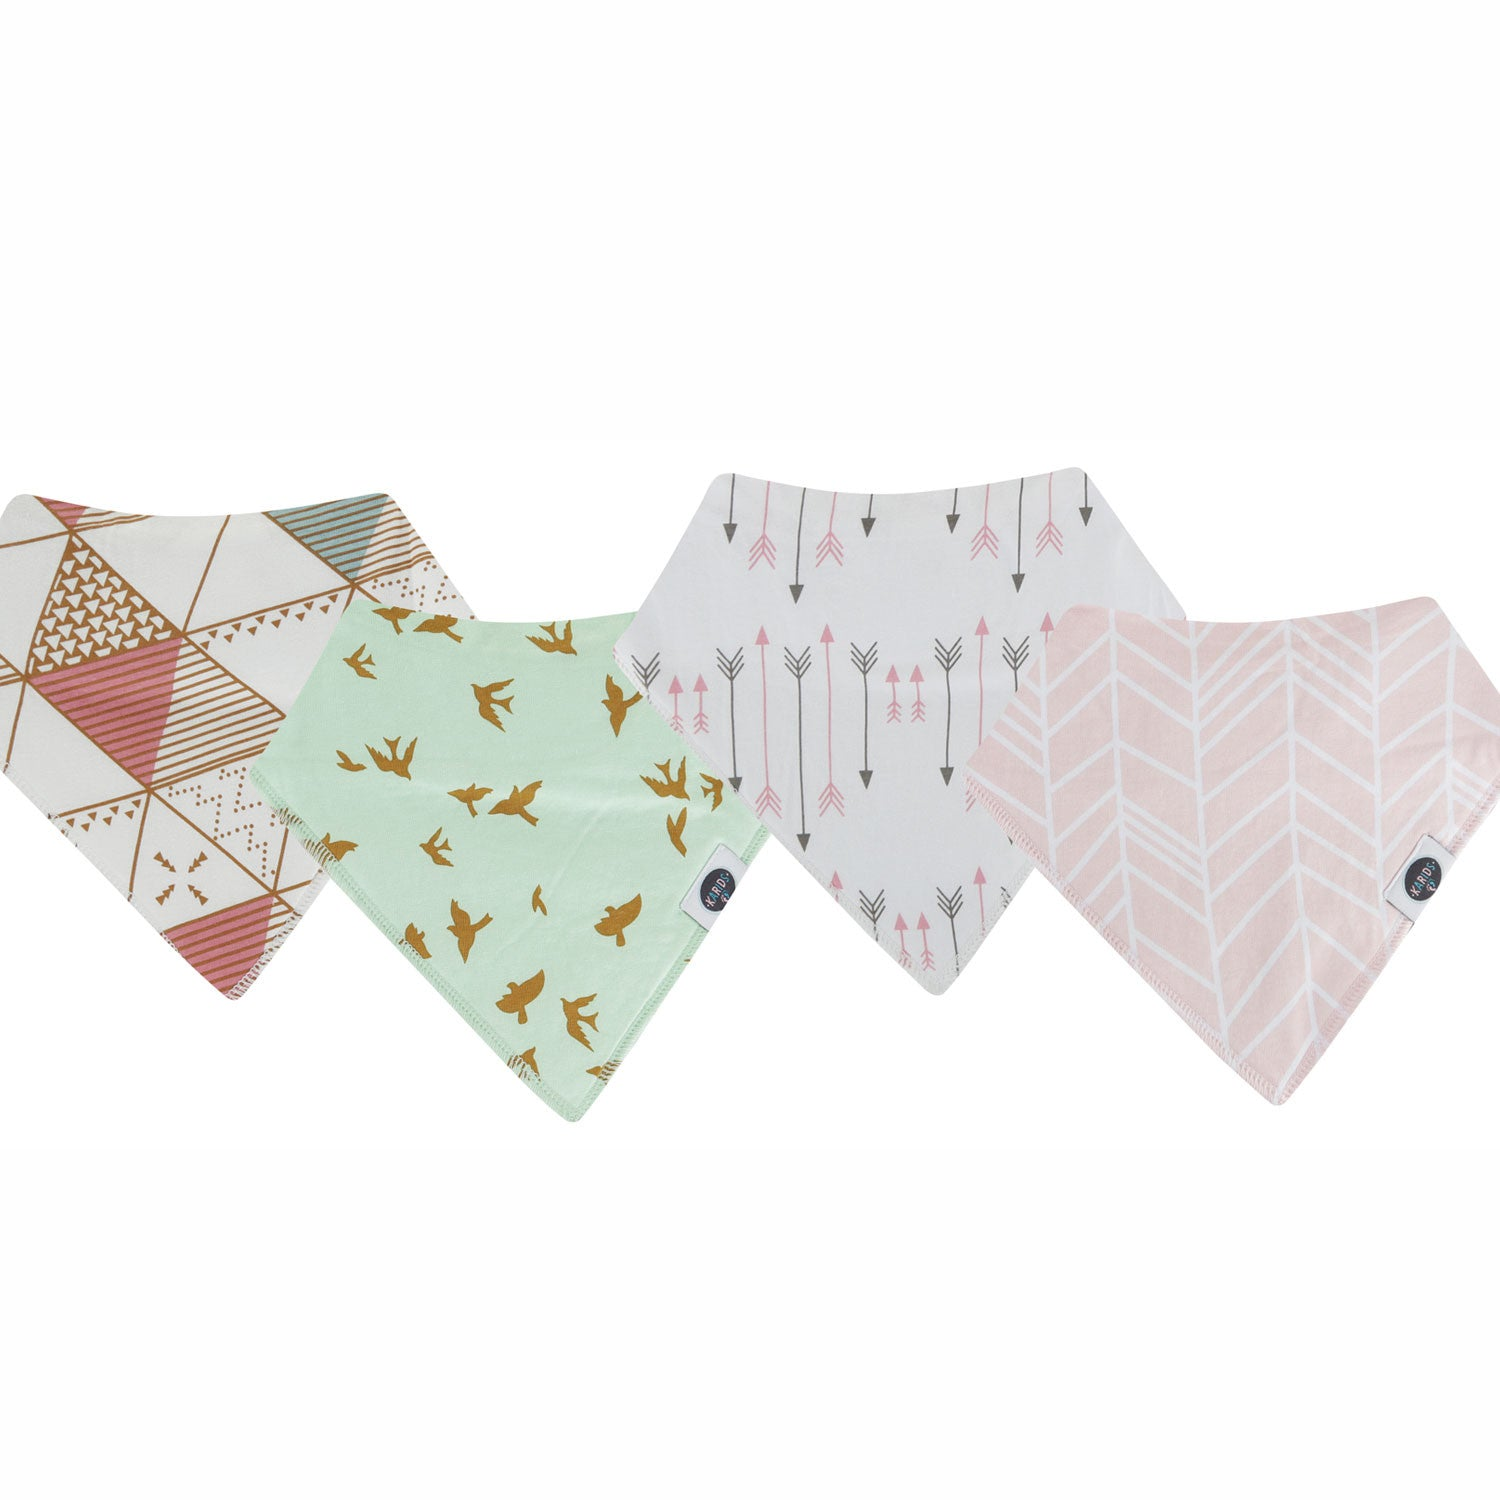 Bandana Bibs are stylish made with cotton fabric that are soft and absorbent.